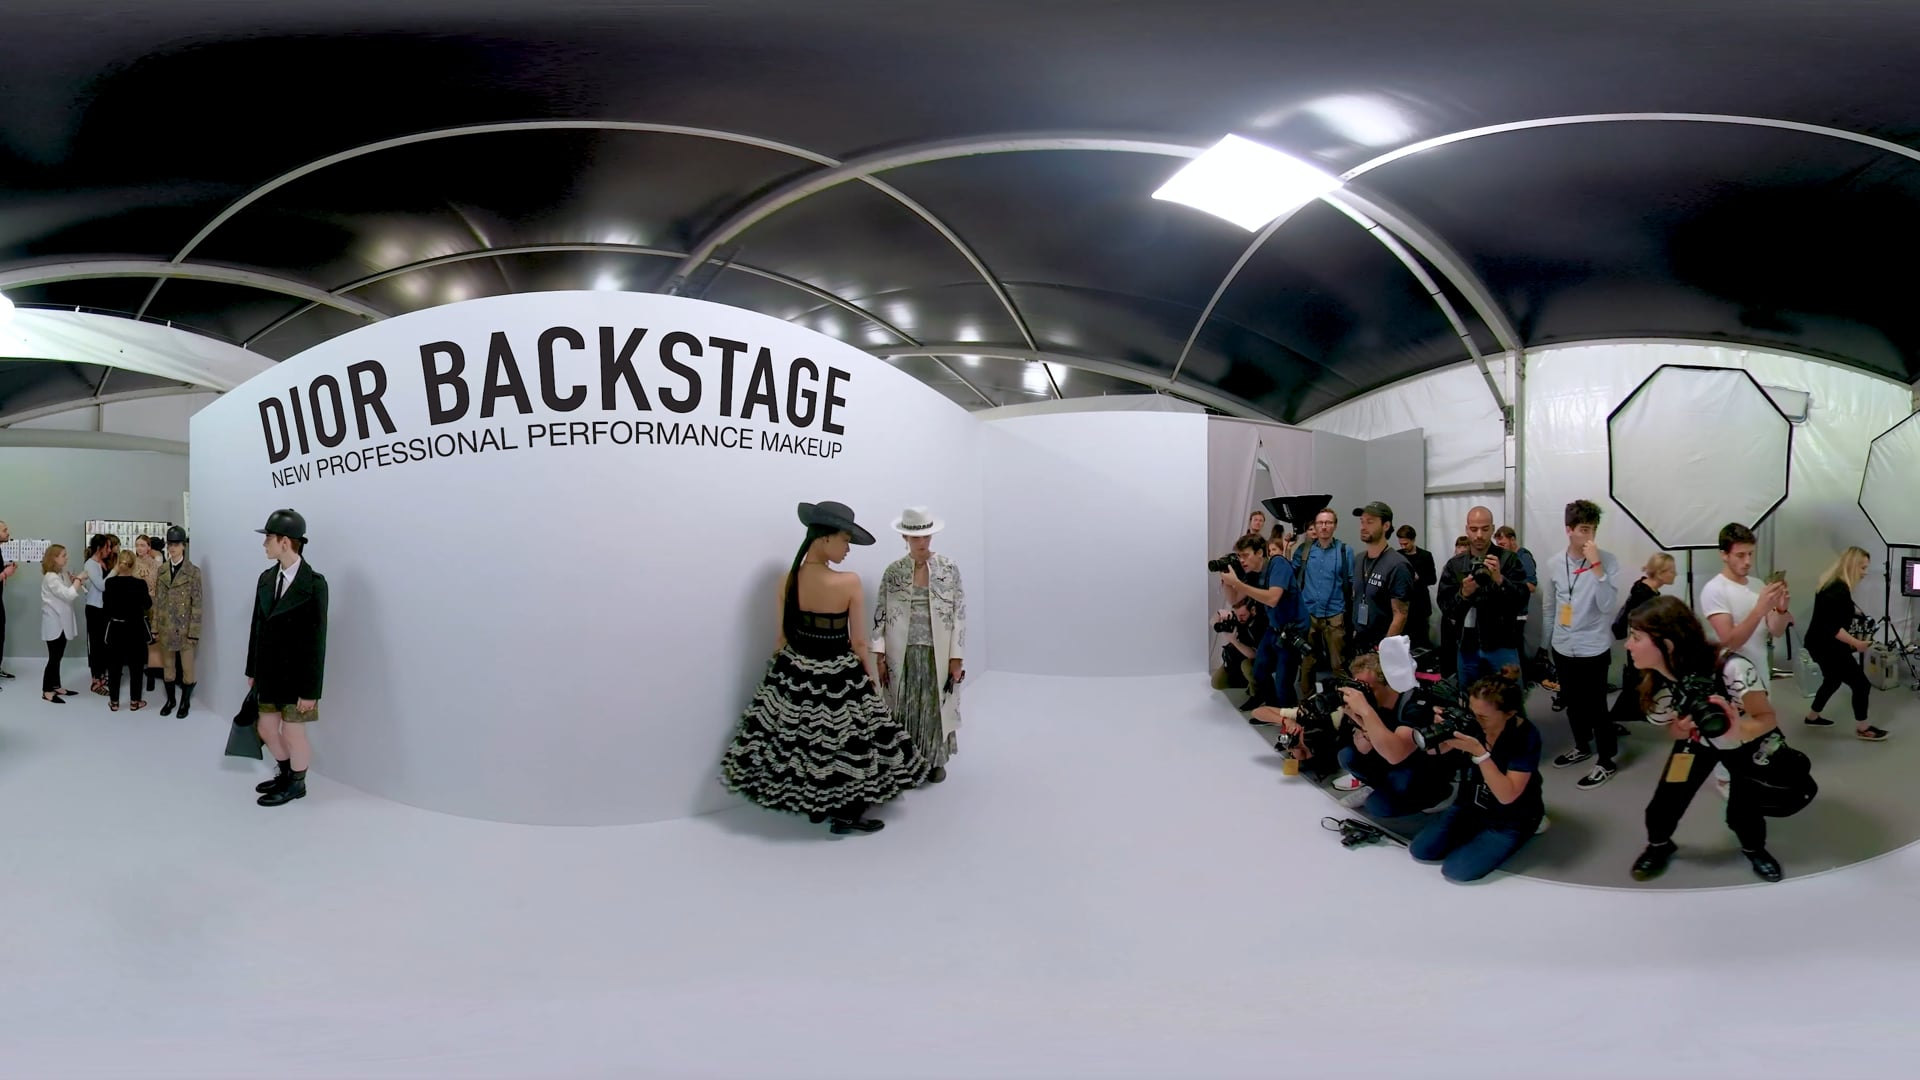 360 VR | Dior Backstage Cruise 2019 Show